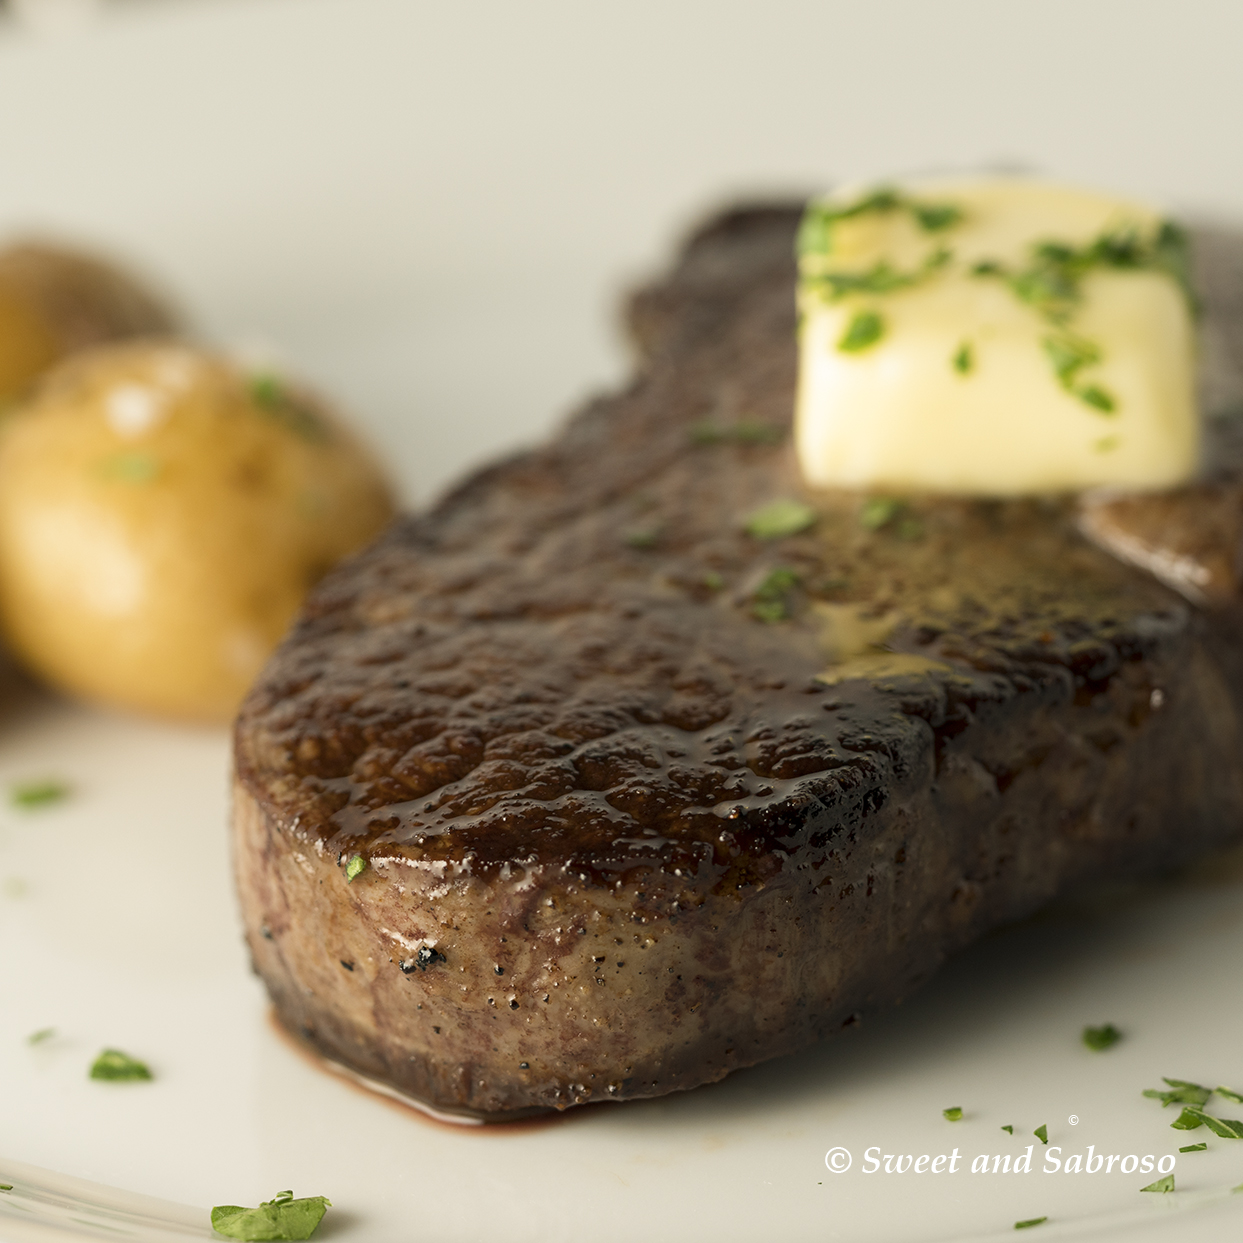 Perfect Pan Seared Restaurant Style Filet Mignon Steaks for Two